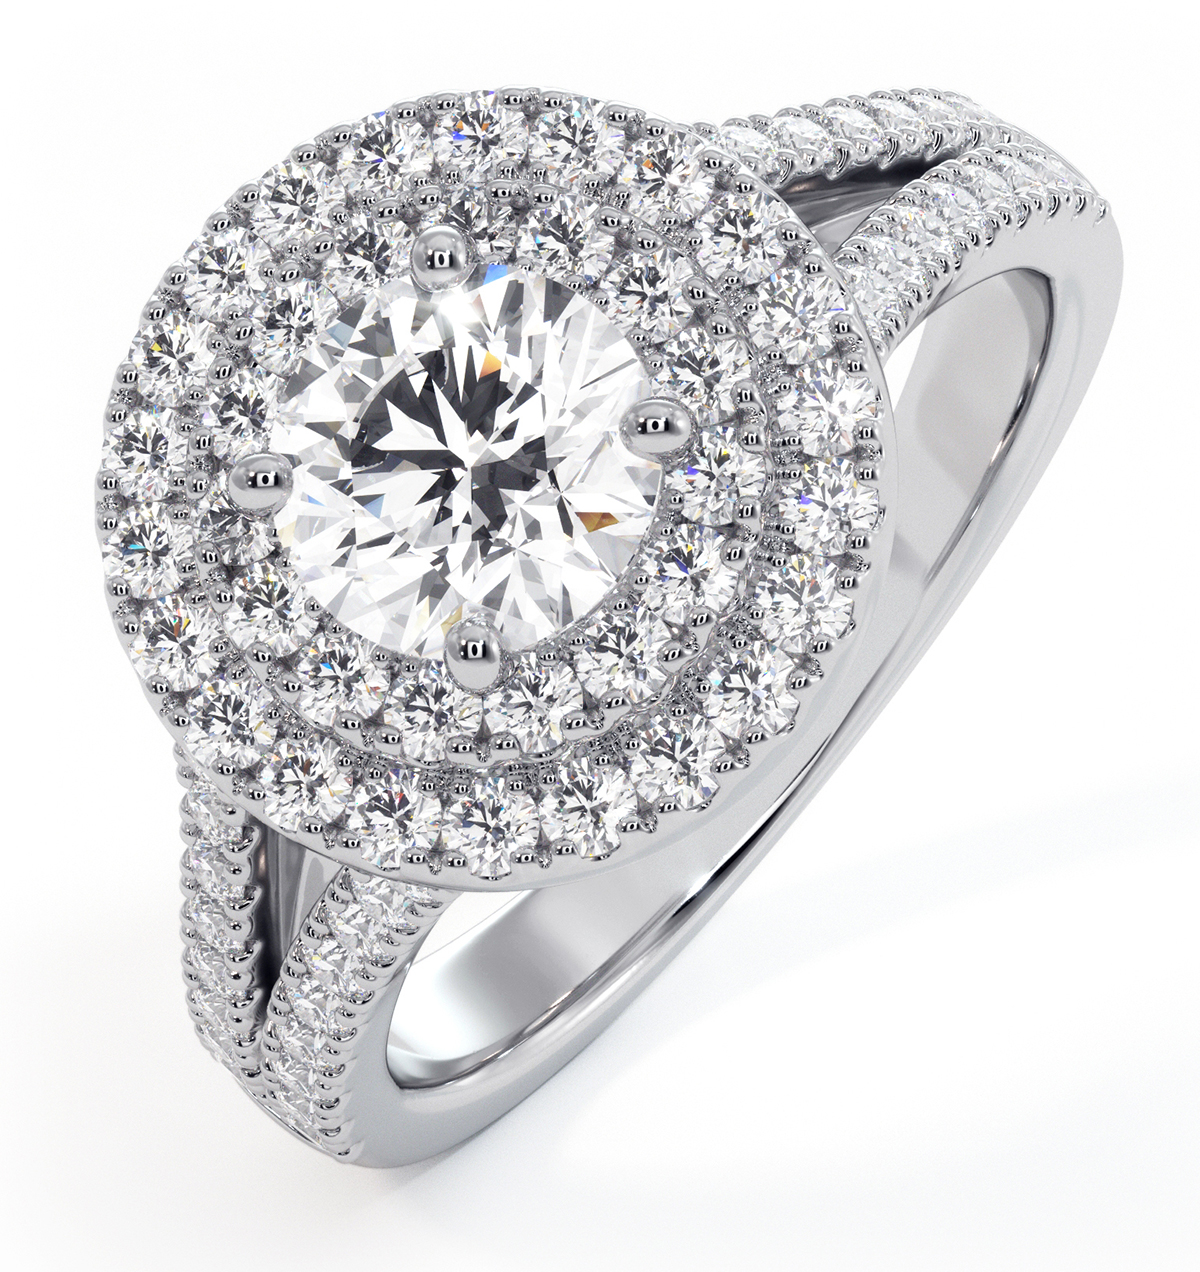 Camilla GIA Diamond Halo Engagement Ring in Platinum 1.65ct G/VS1 - image 1